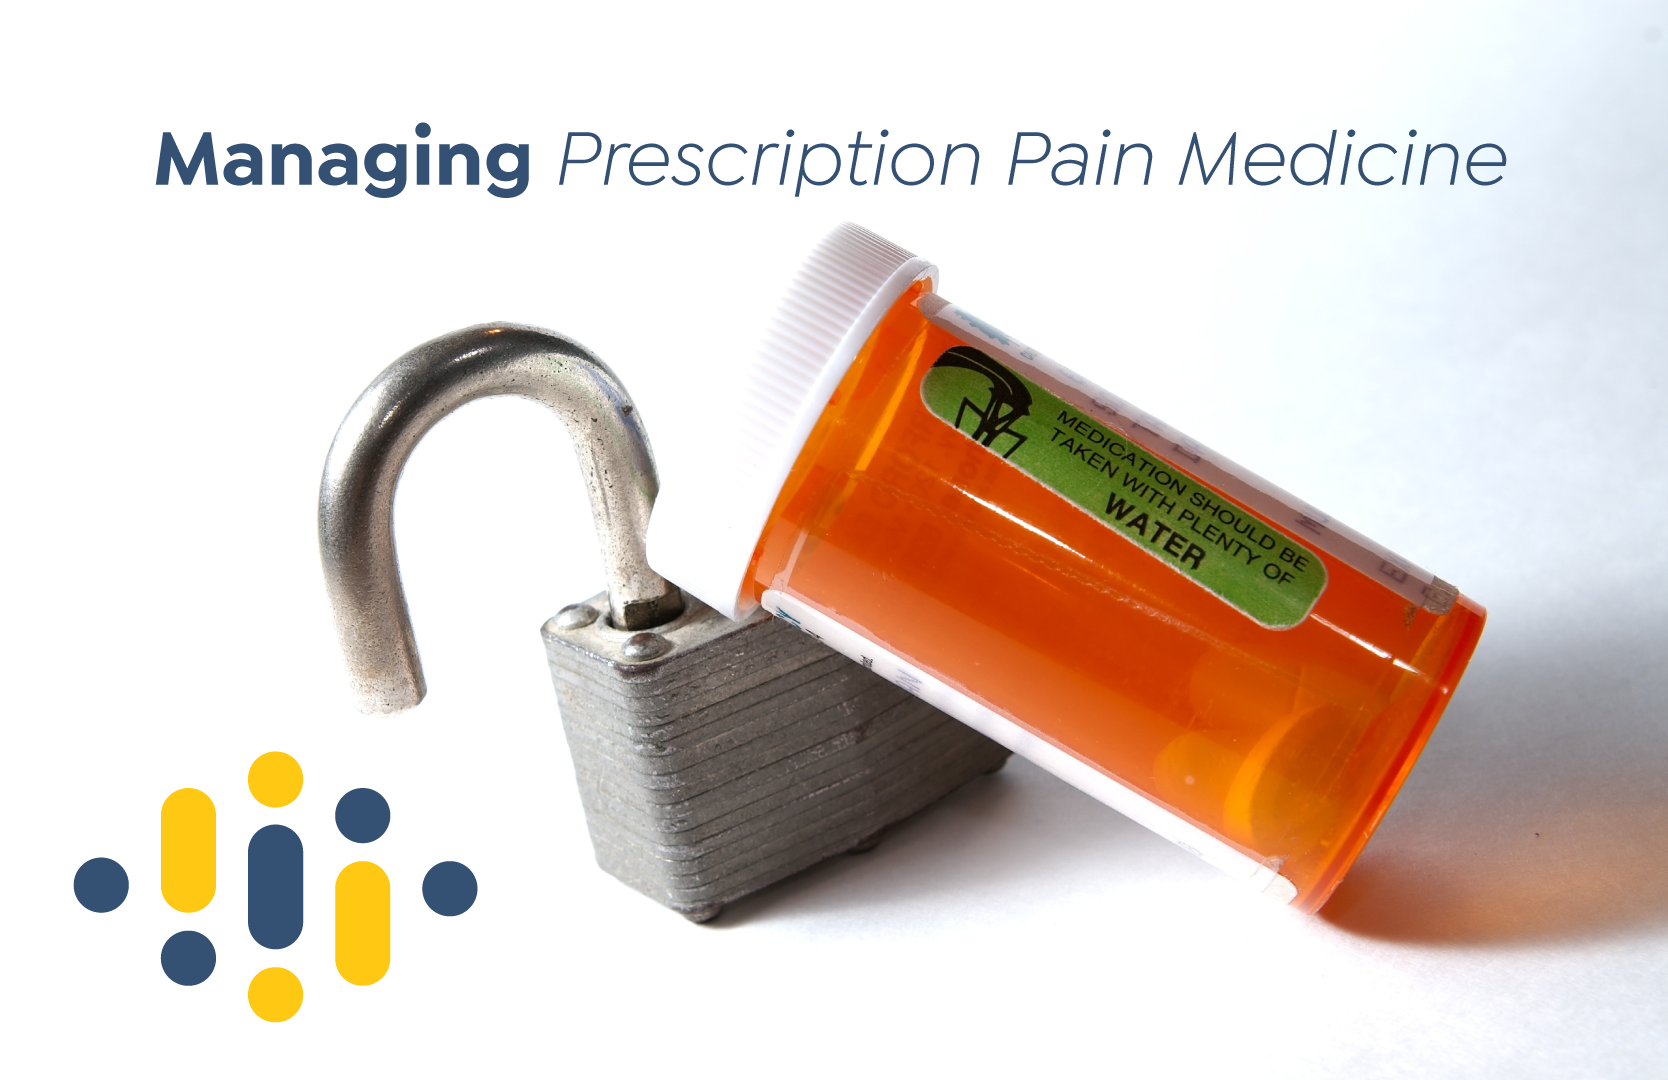 Managing Pain Medication